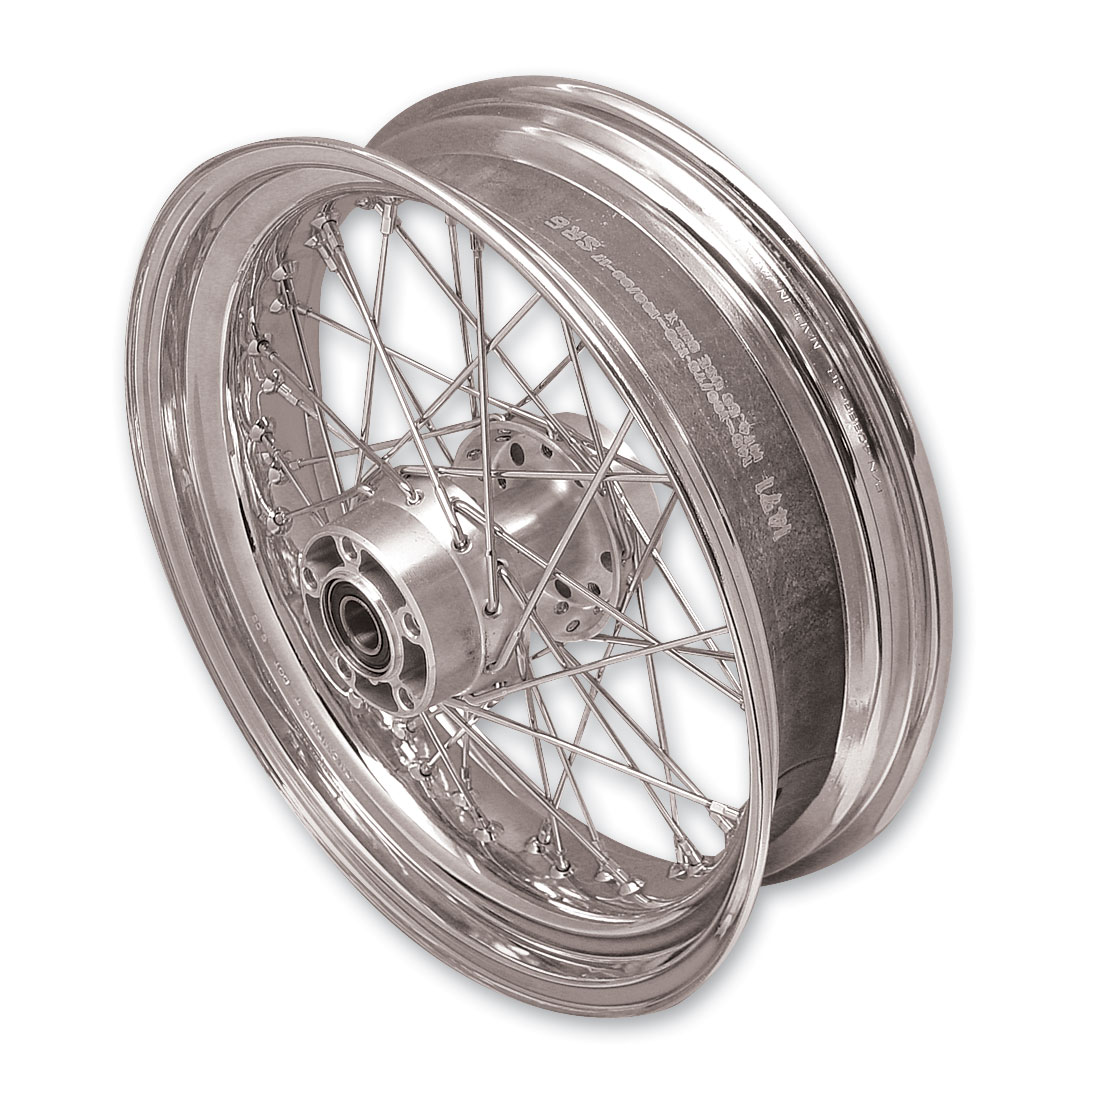 V-Twin Manufacturing Replica 40 Spoke Rear Wheel 17″ × 4.5″